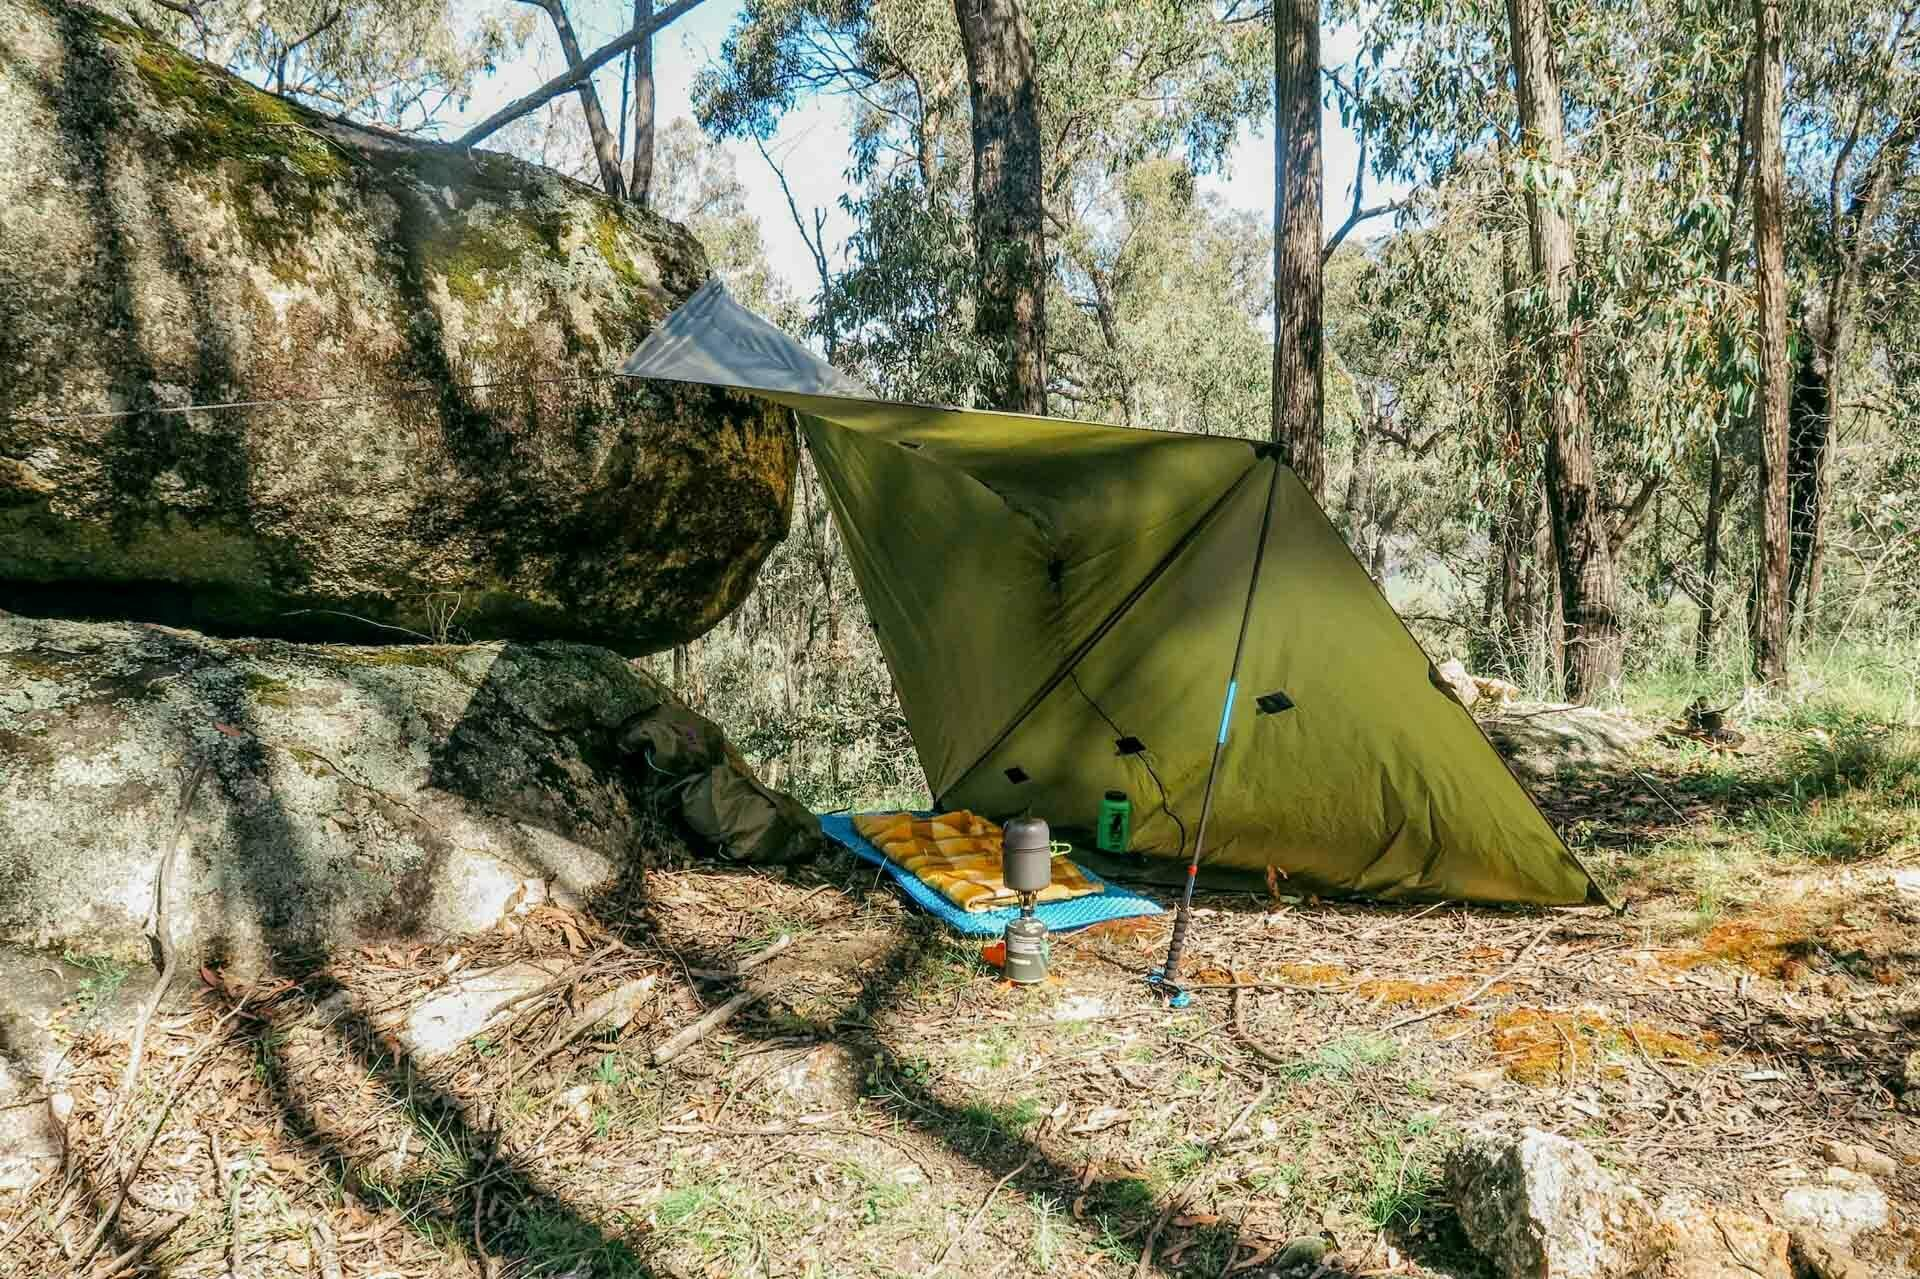 How To Camp Under a Tarp, kale munro, tarp camping, shelter, lean-to